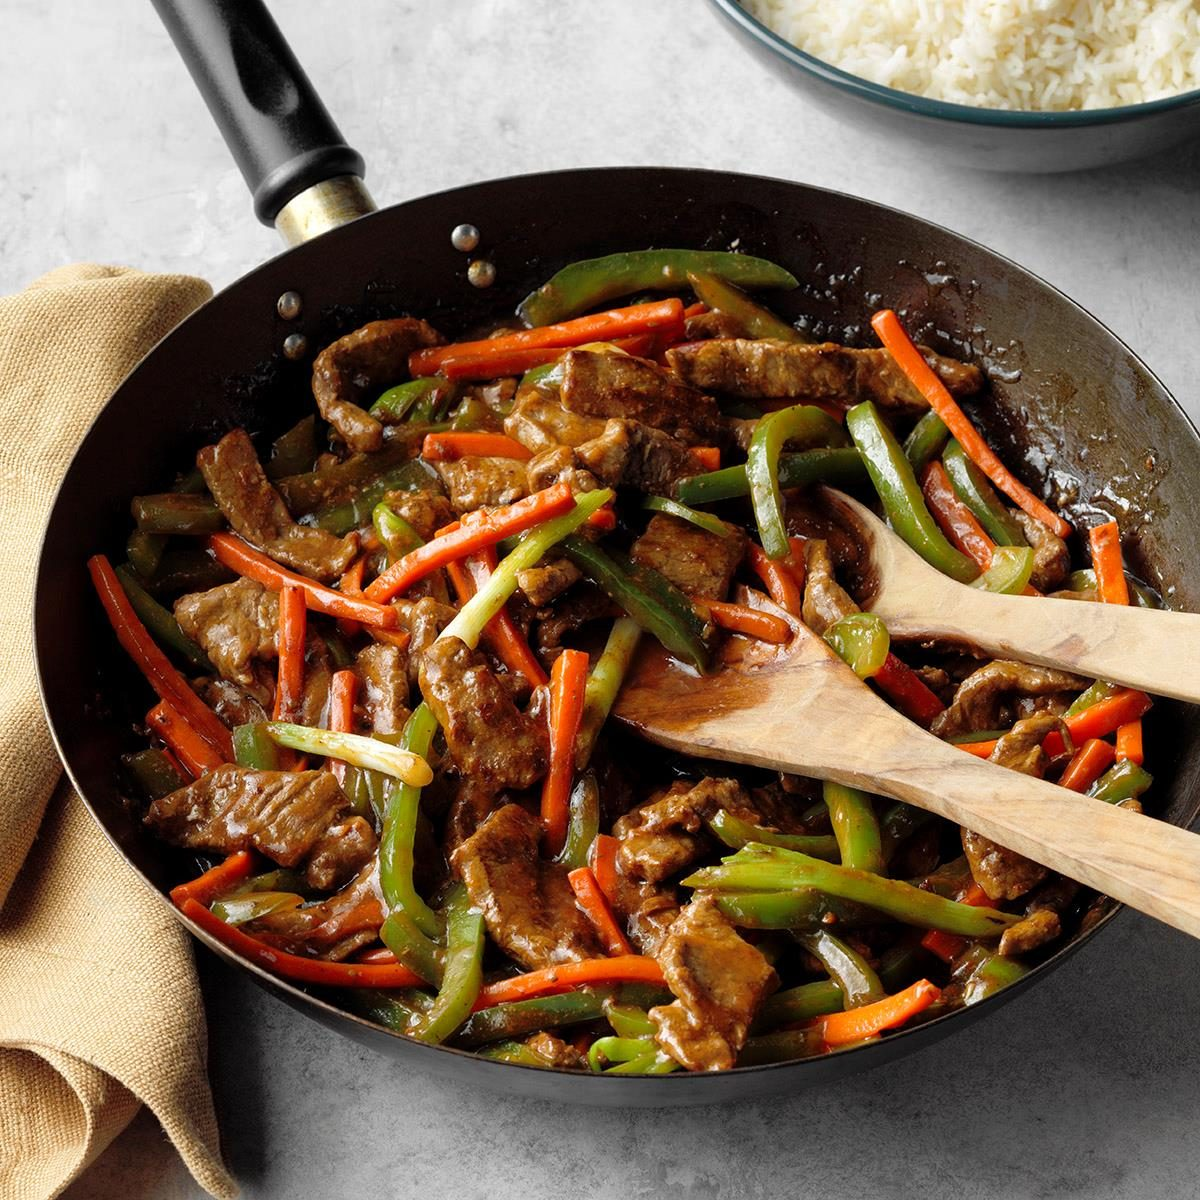 Friday: Steak Stir-Fry